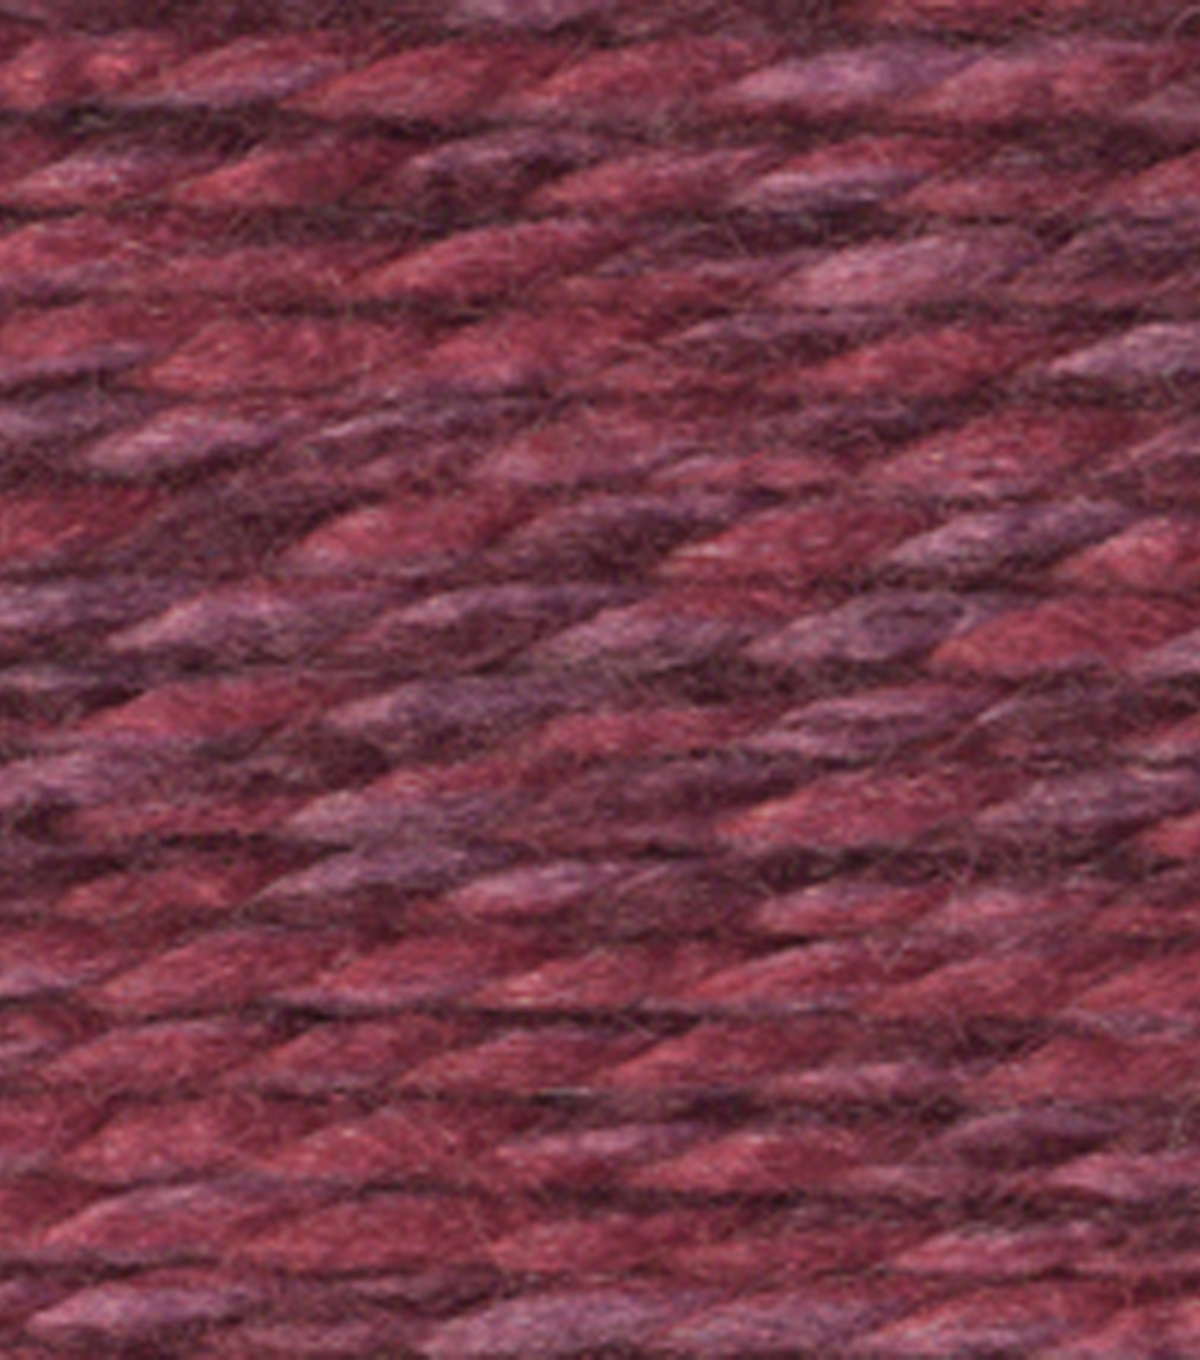 Lion Brand Wool-Ease Thick And Quick Yarn, Wild Strawberry